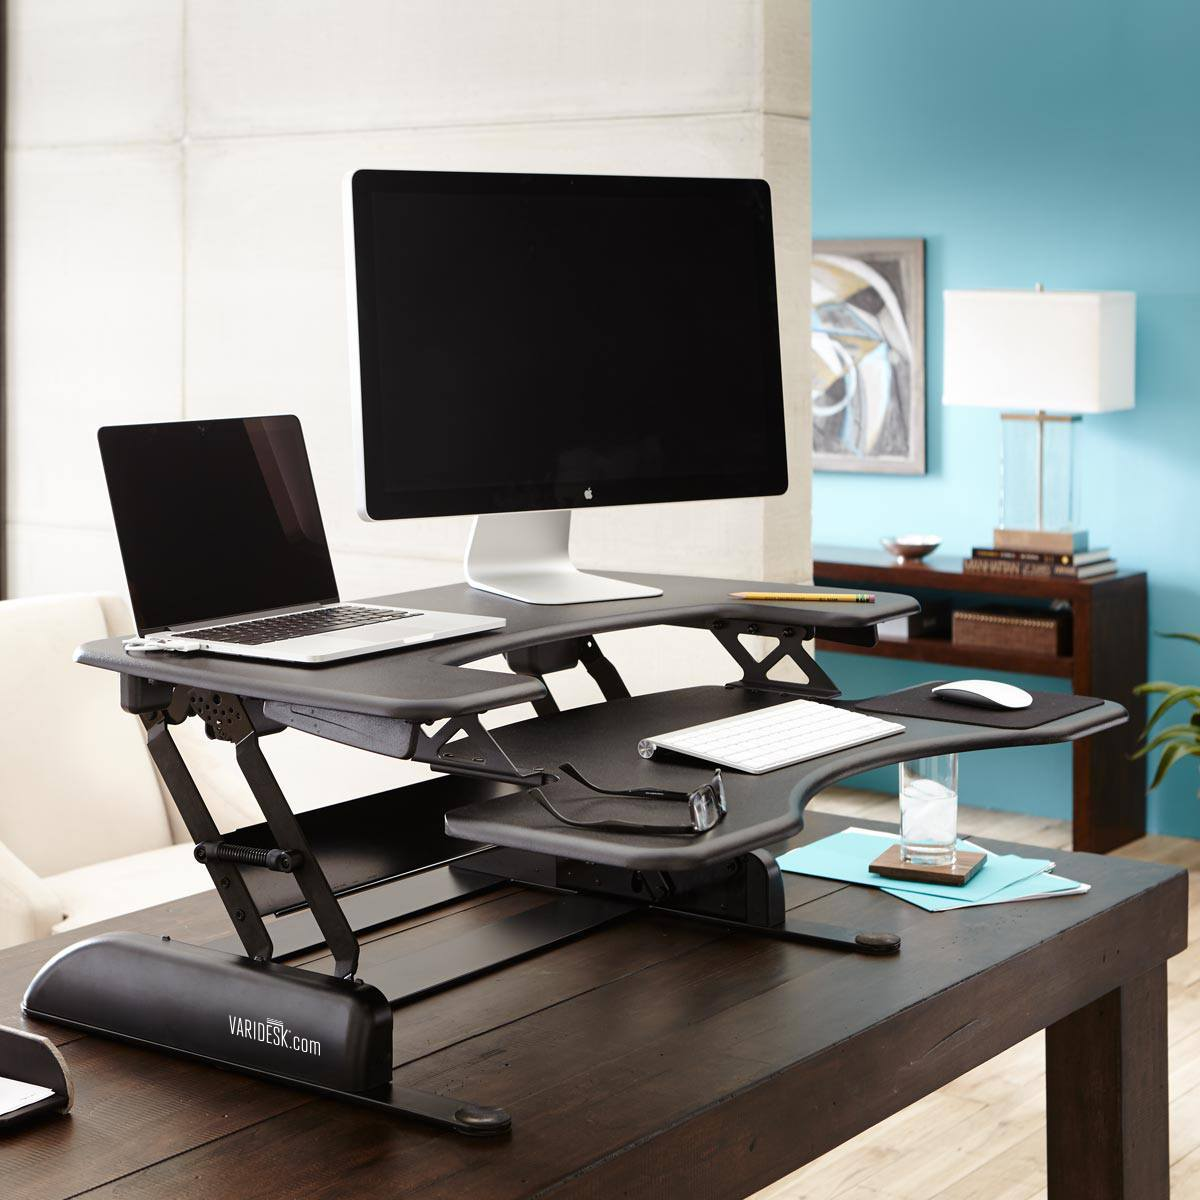 Varidesk Is Expensive   They Worth It? Well, That Depends.